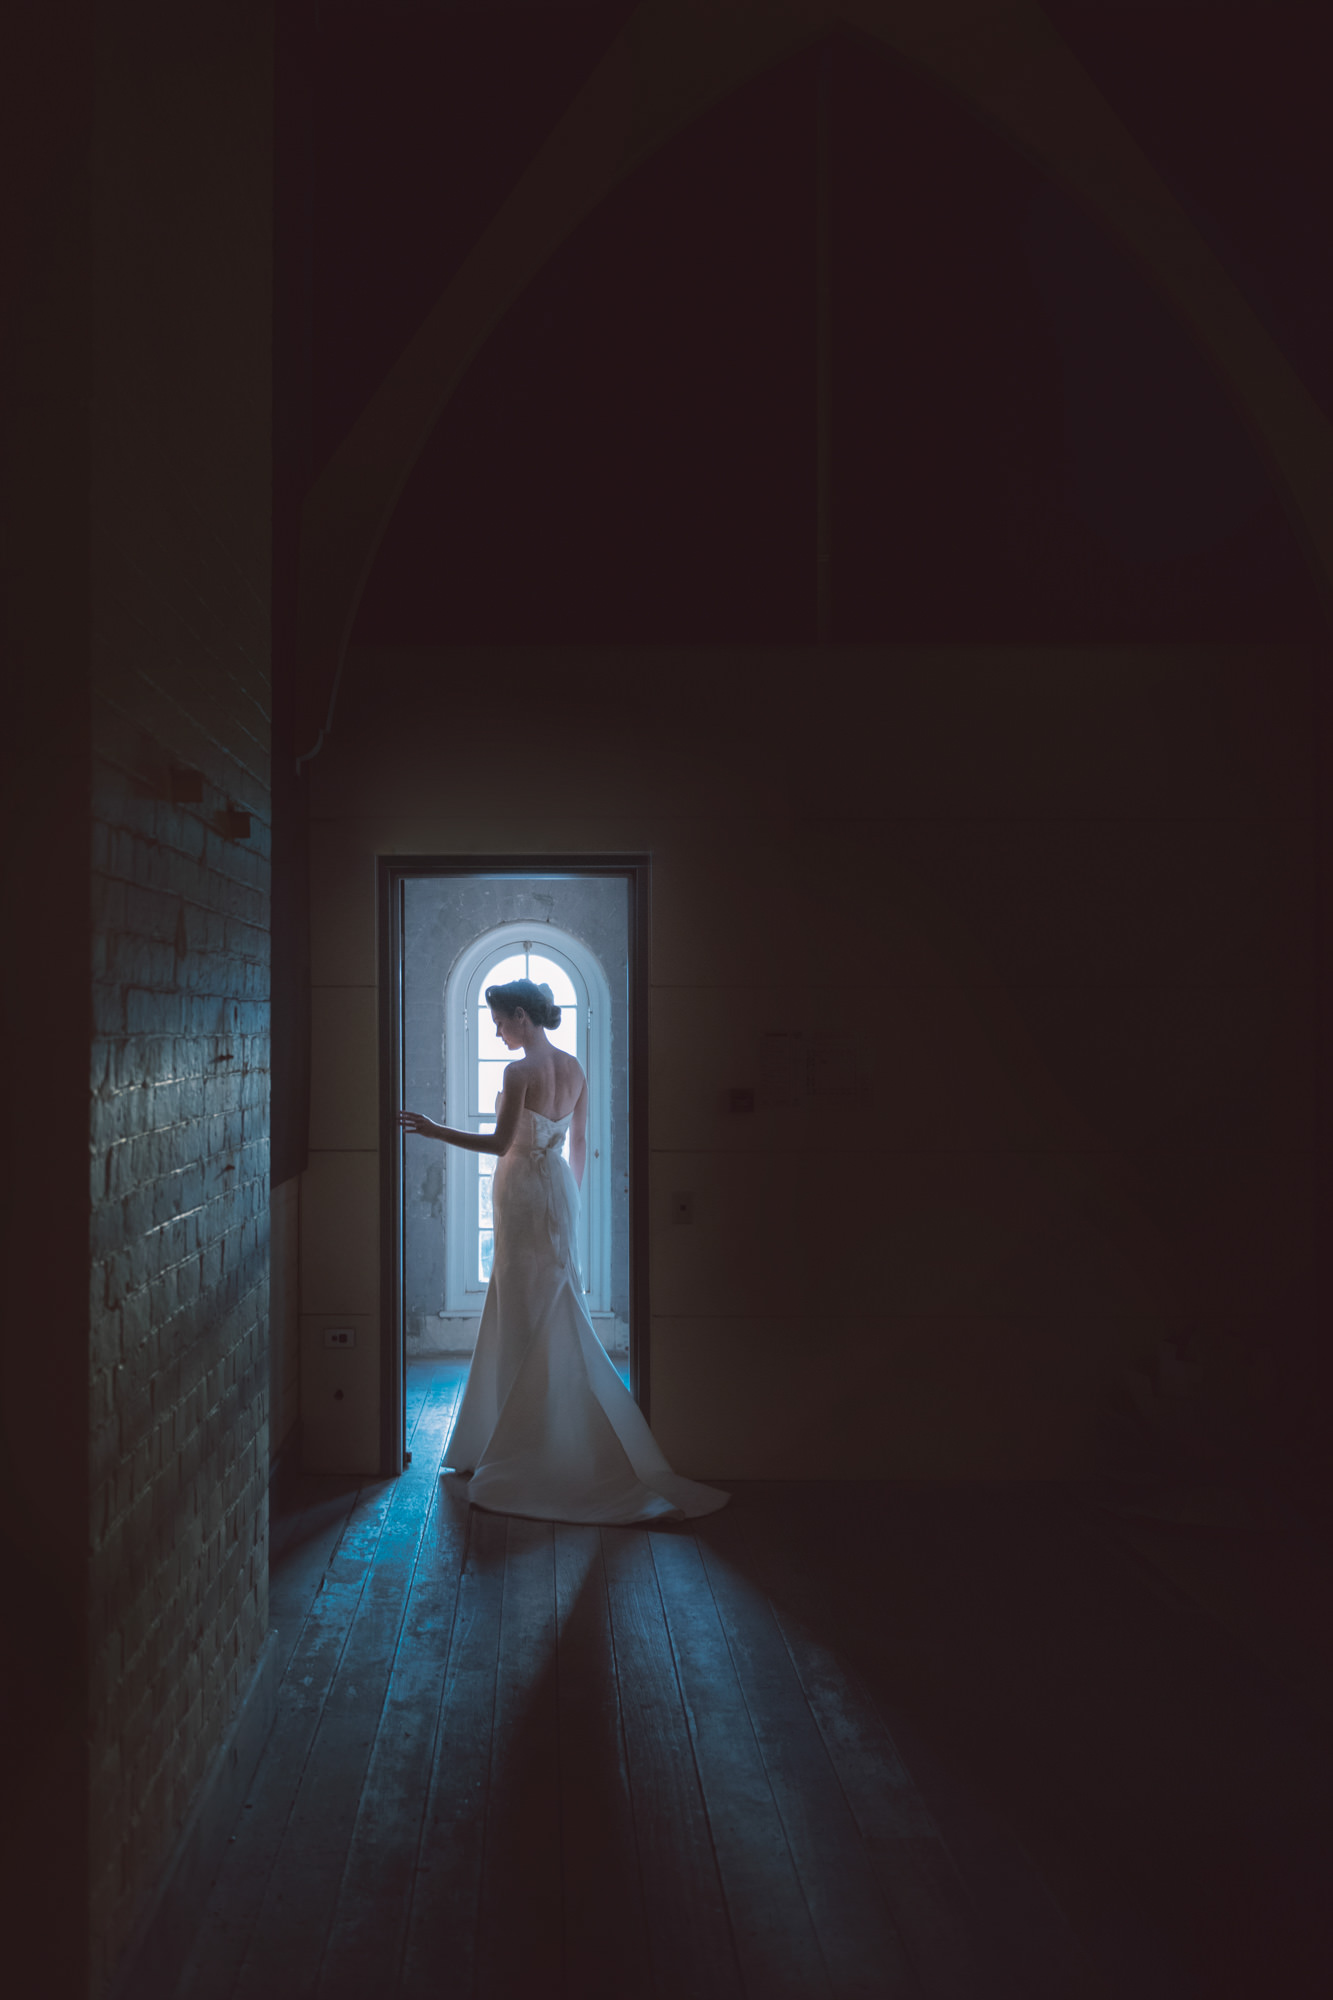 Moody photo of bride framed in doorway, by Studio Impressions Photography